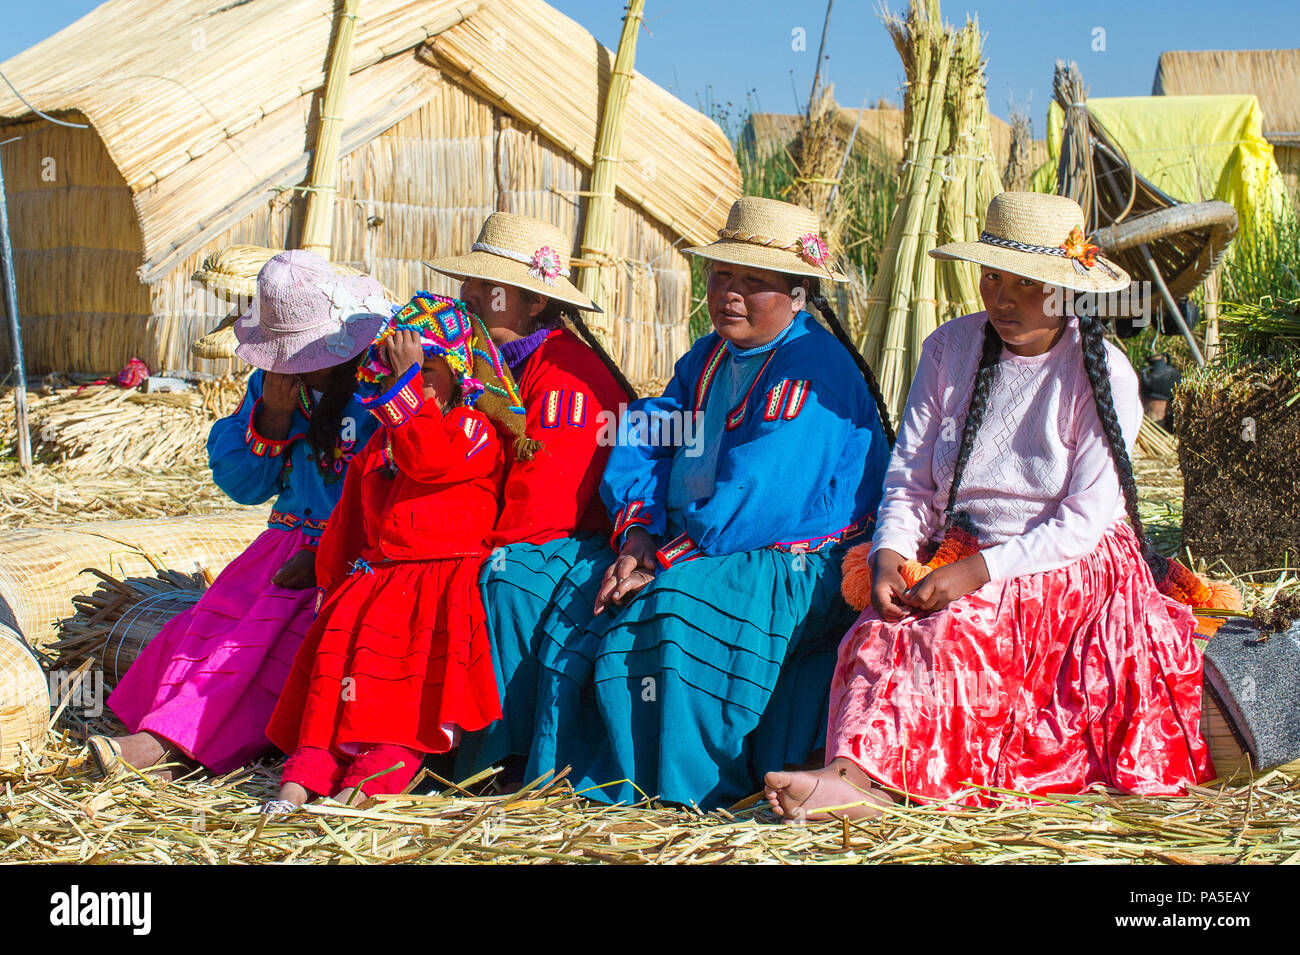 PUNO, PERU - NOVEMBER 7, 2010: Unidentified Uros people in traditional clothes on the  Uros Islands, Peru, Nov 7, 2010. Uros Islands iclude 42 floatin - Stock Image